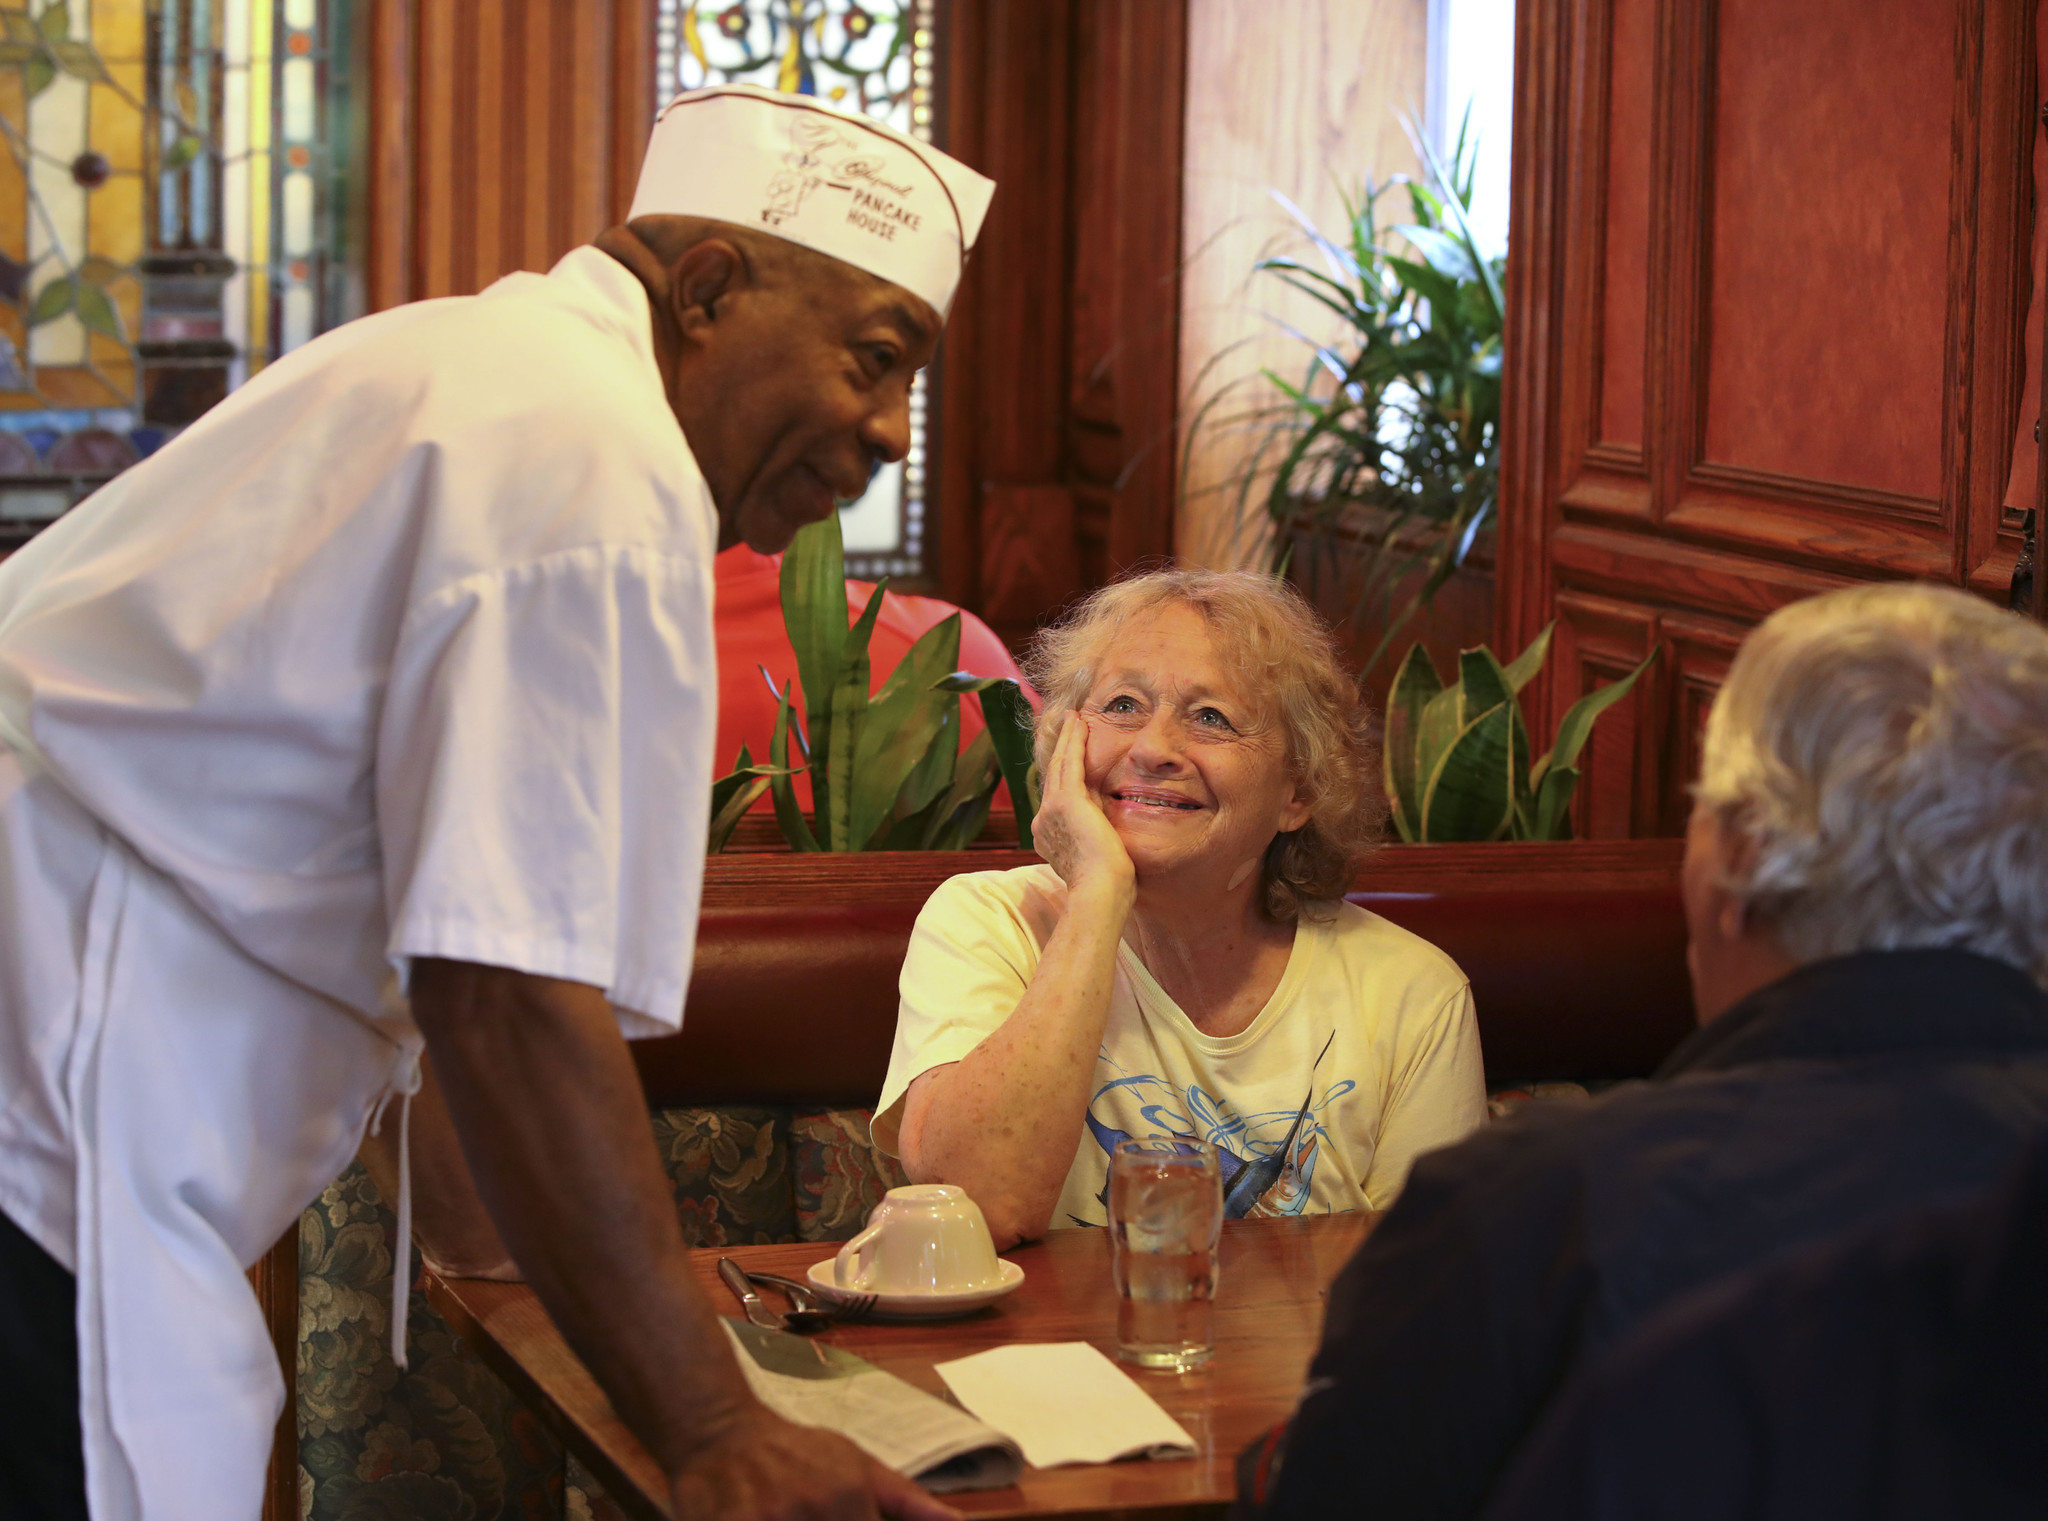 Meet the table busser who's worked at the same Wilmette pancake house for 54 years